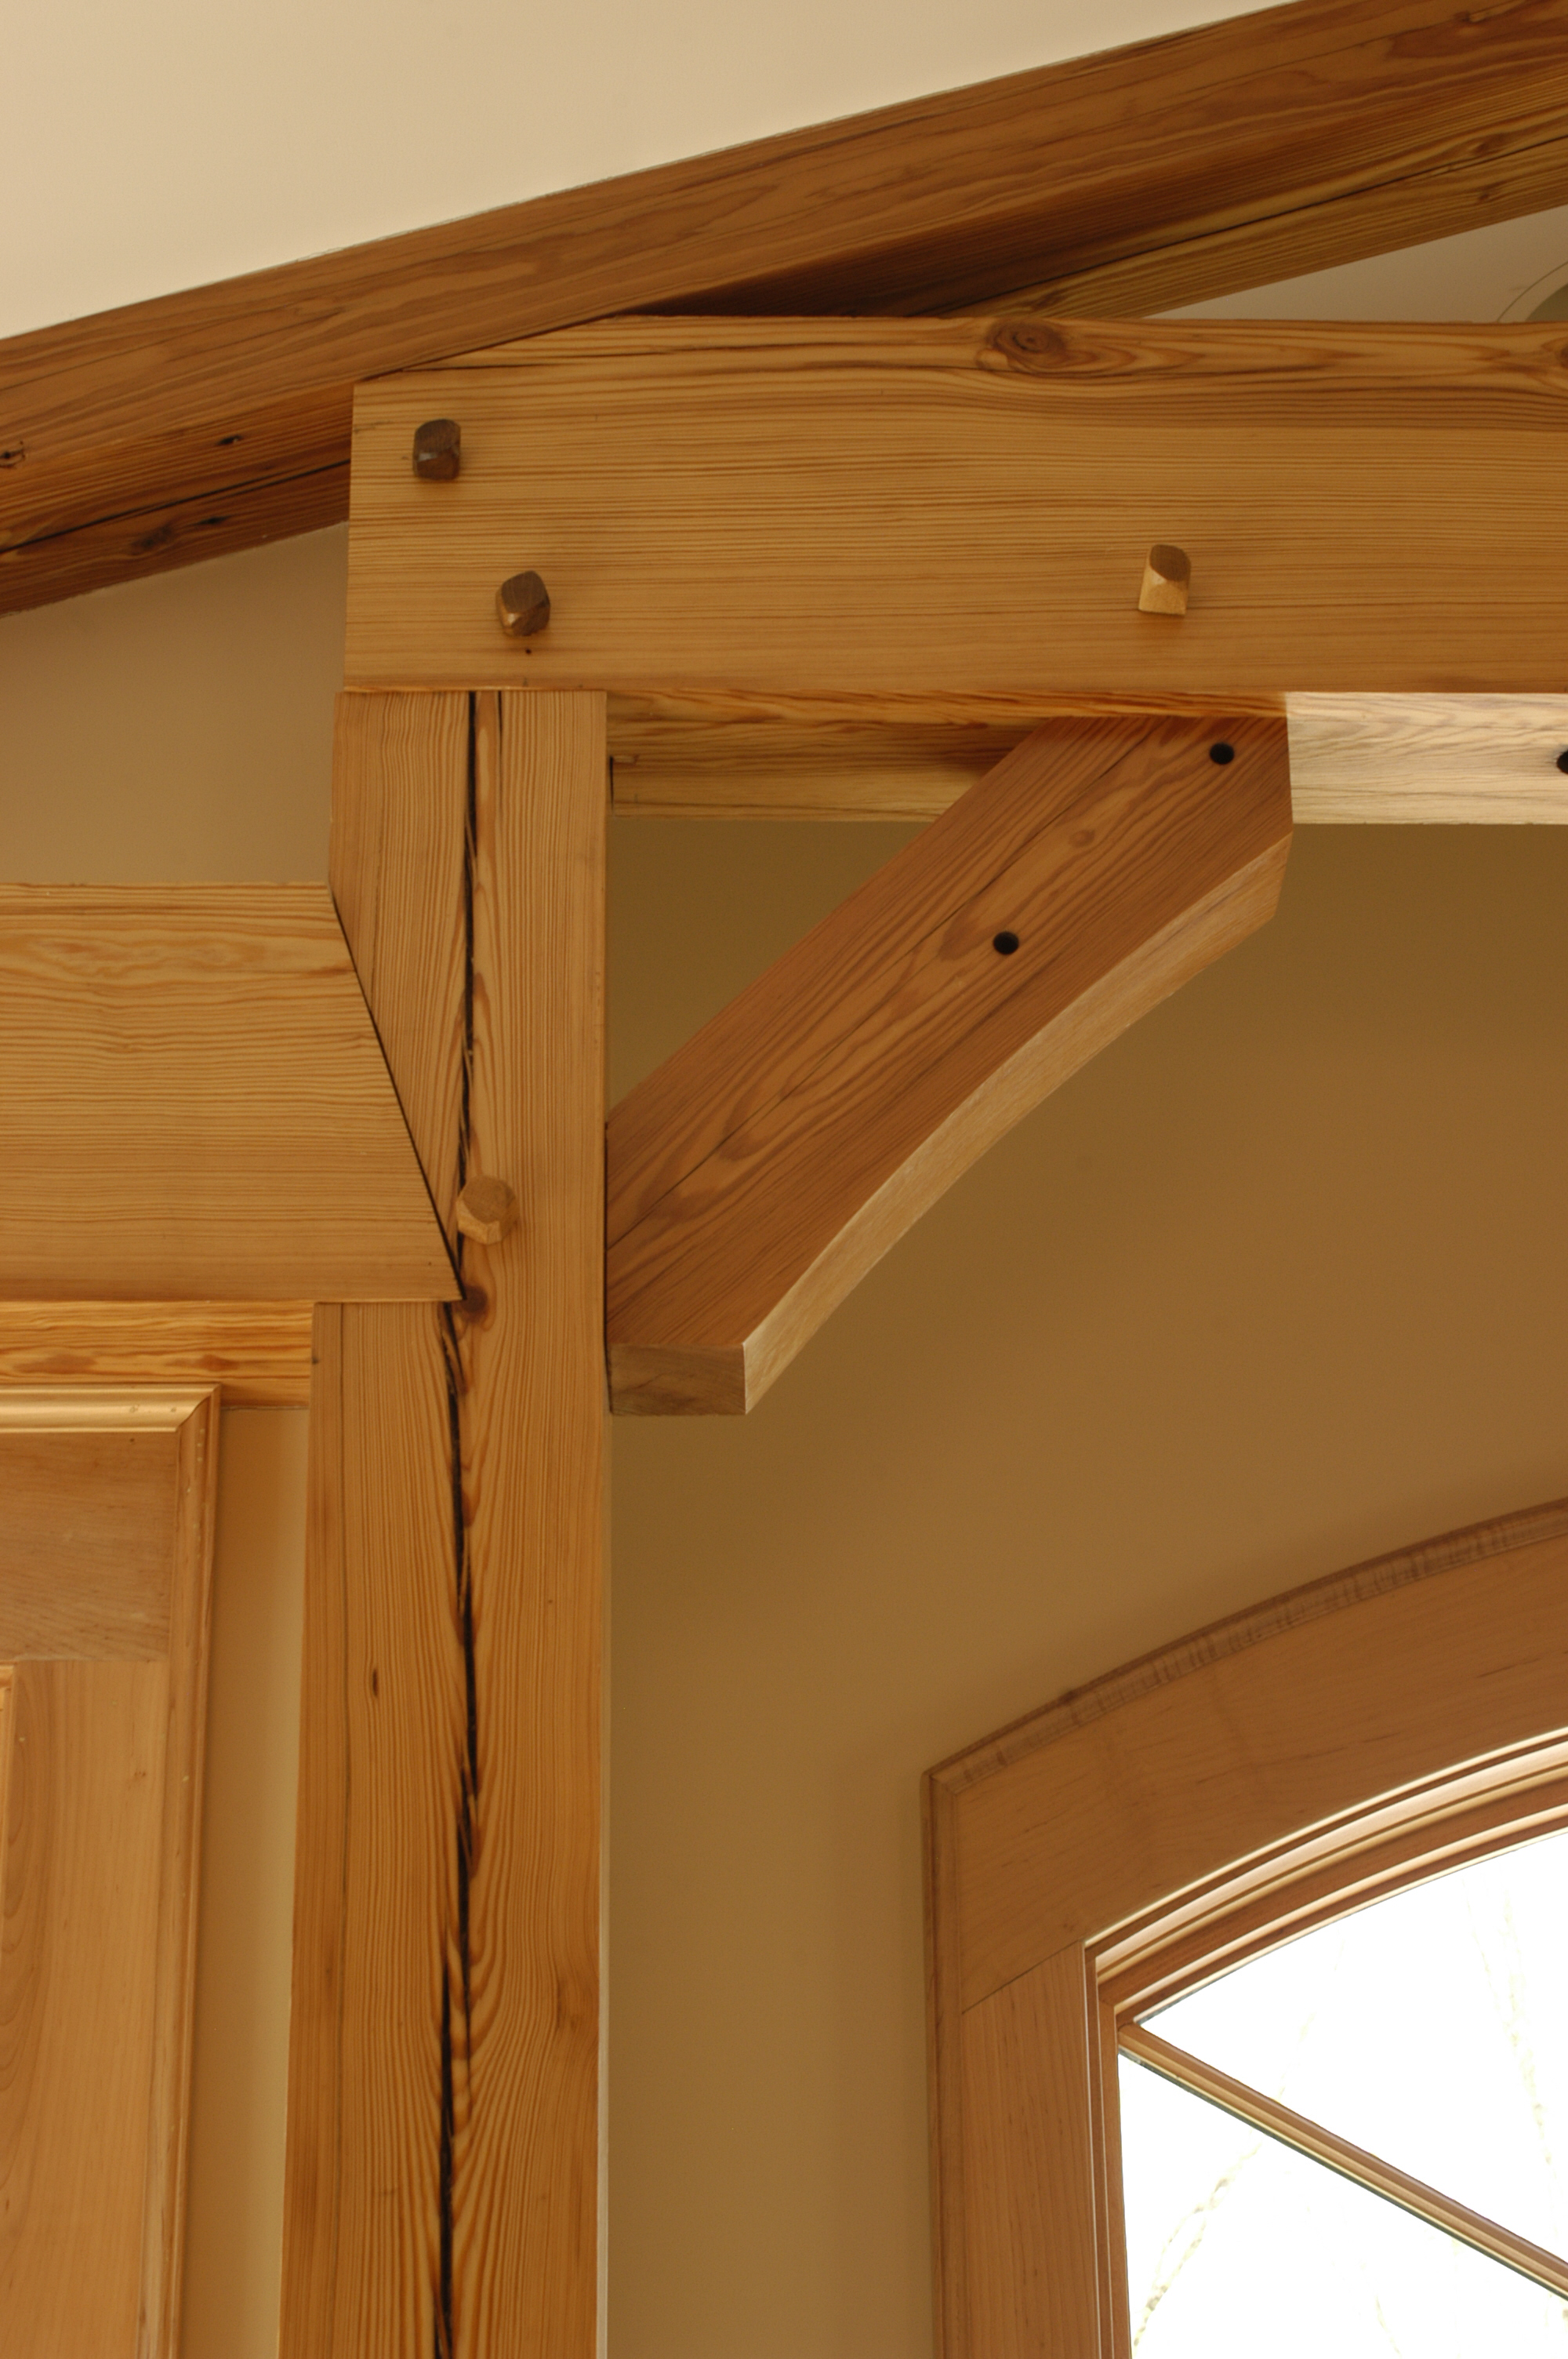 Details of the hand pegged, heavy timber trusses.